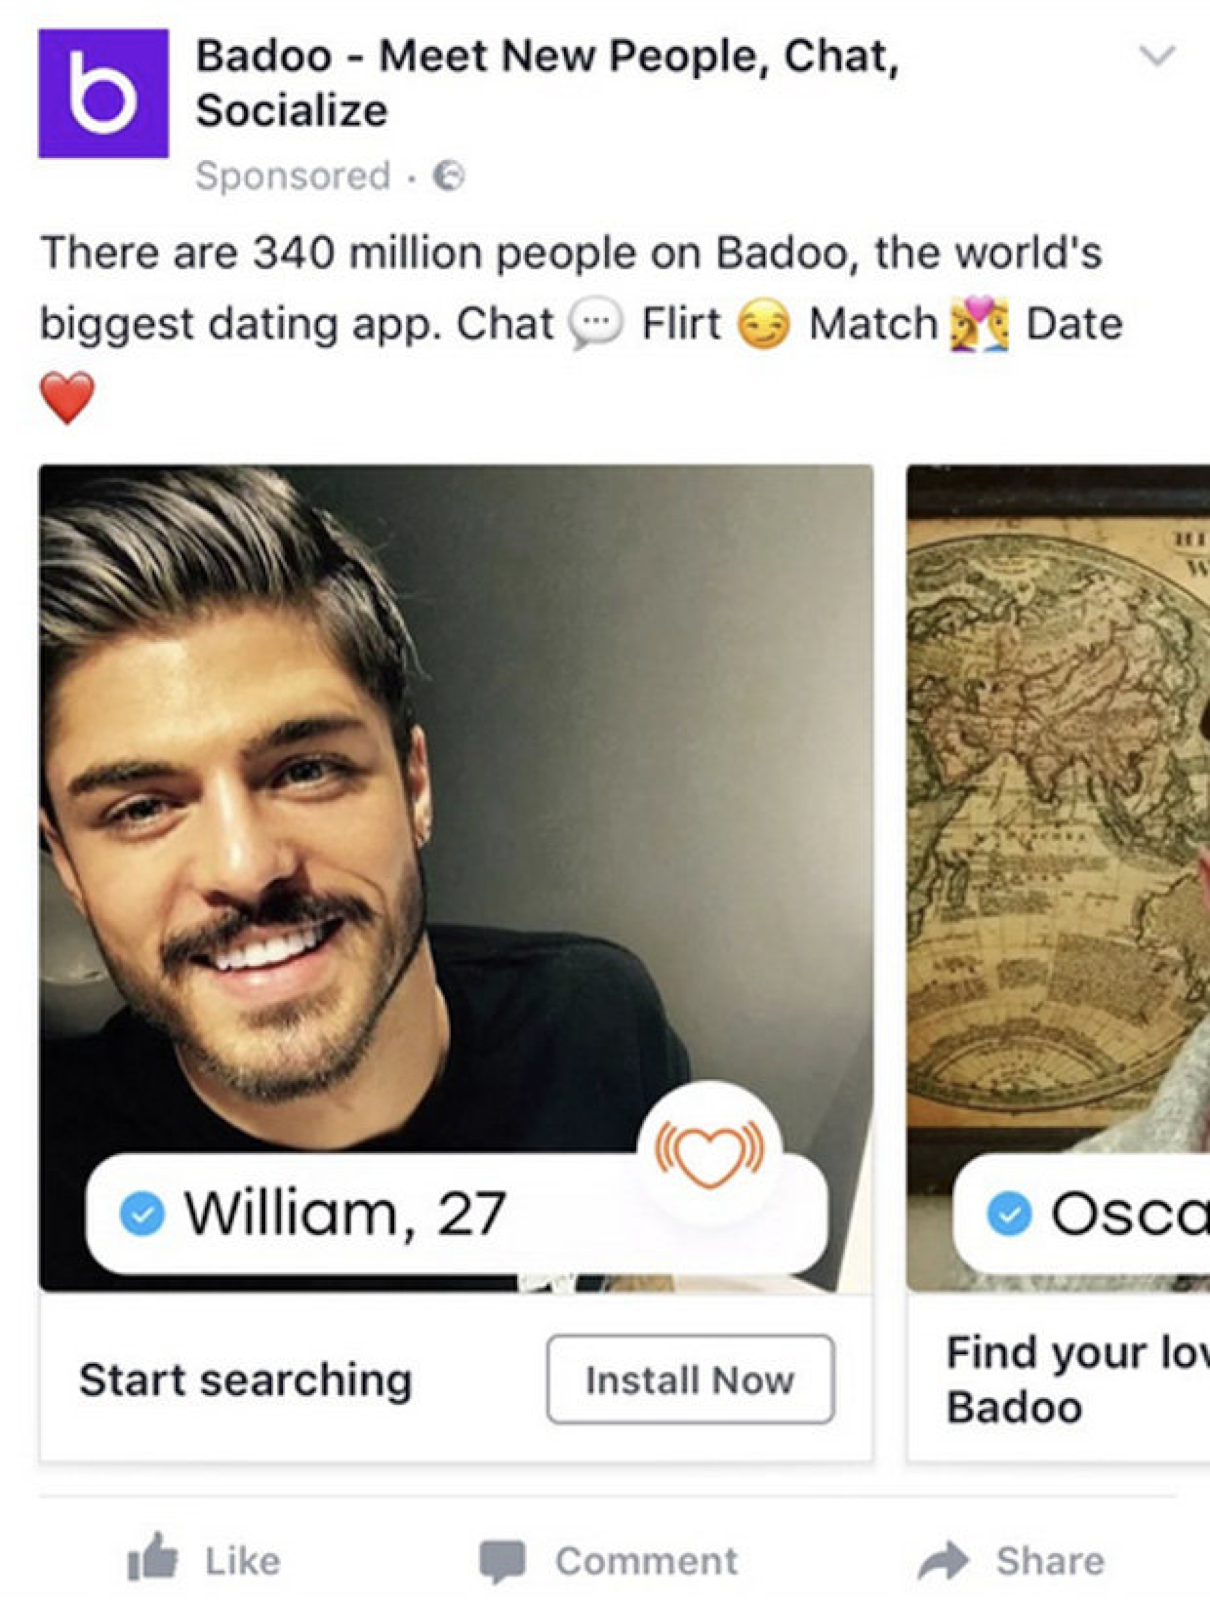 how do you search for people on badoo